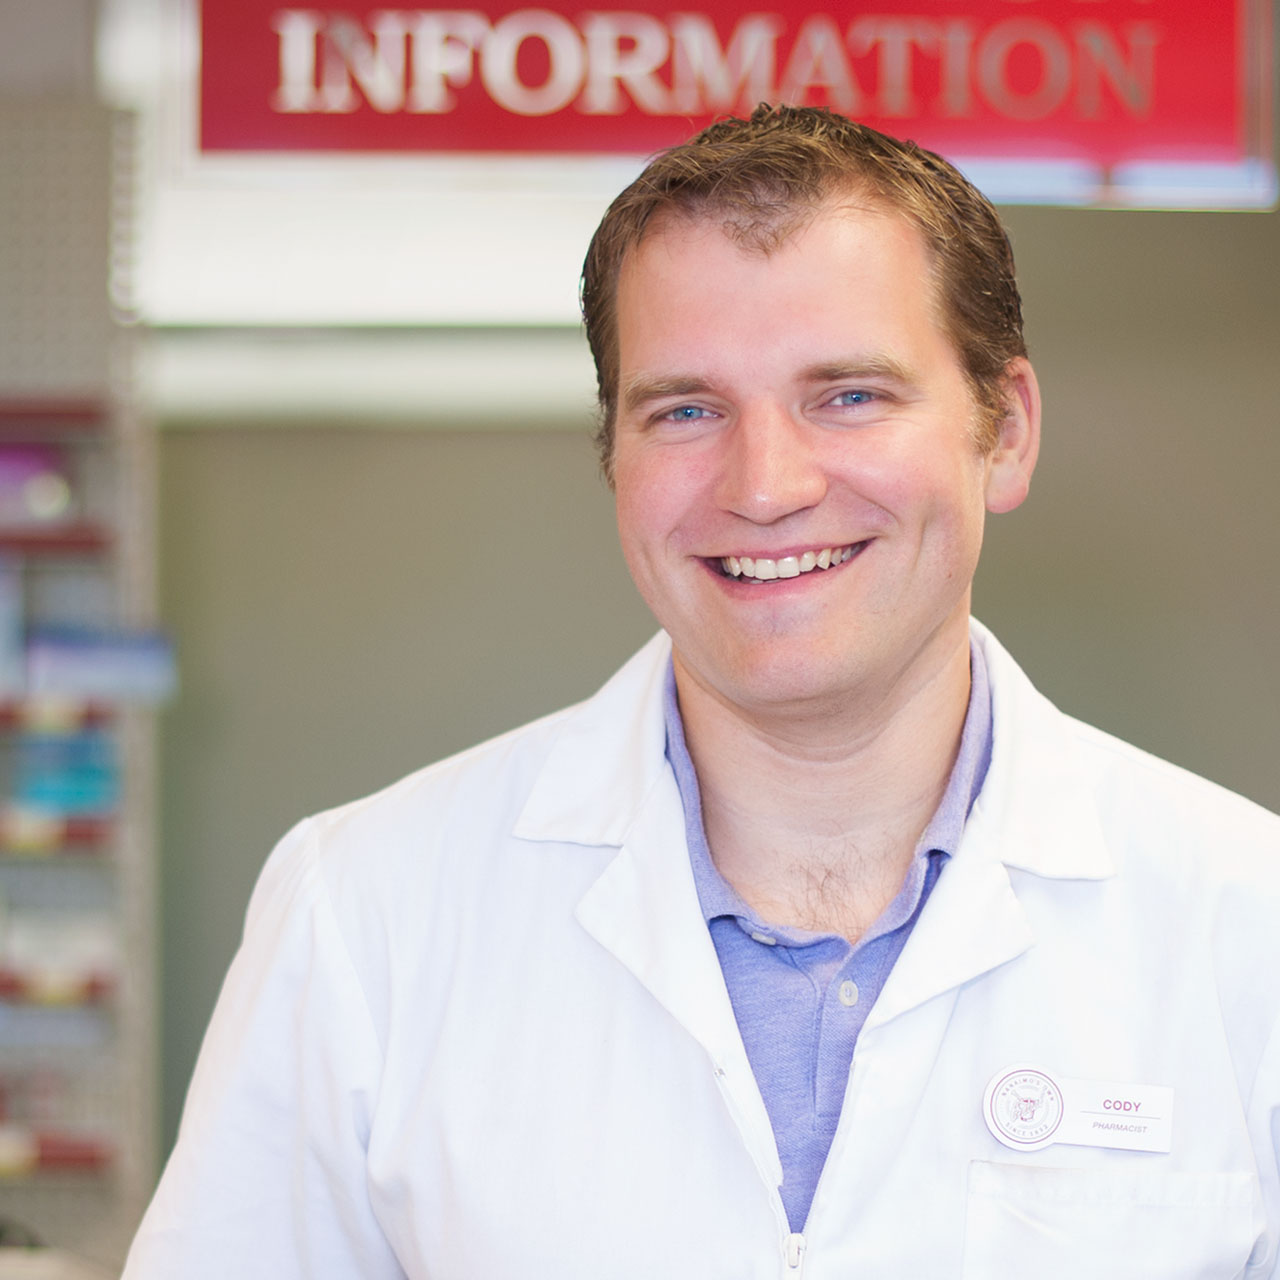 Find our pharmacist Cody at our Brickyard location